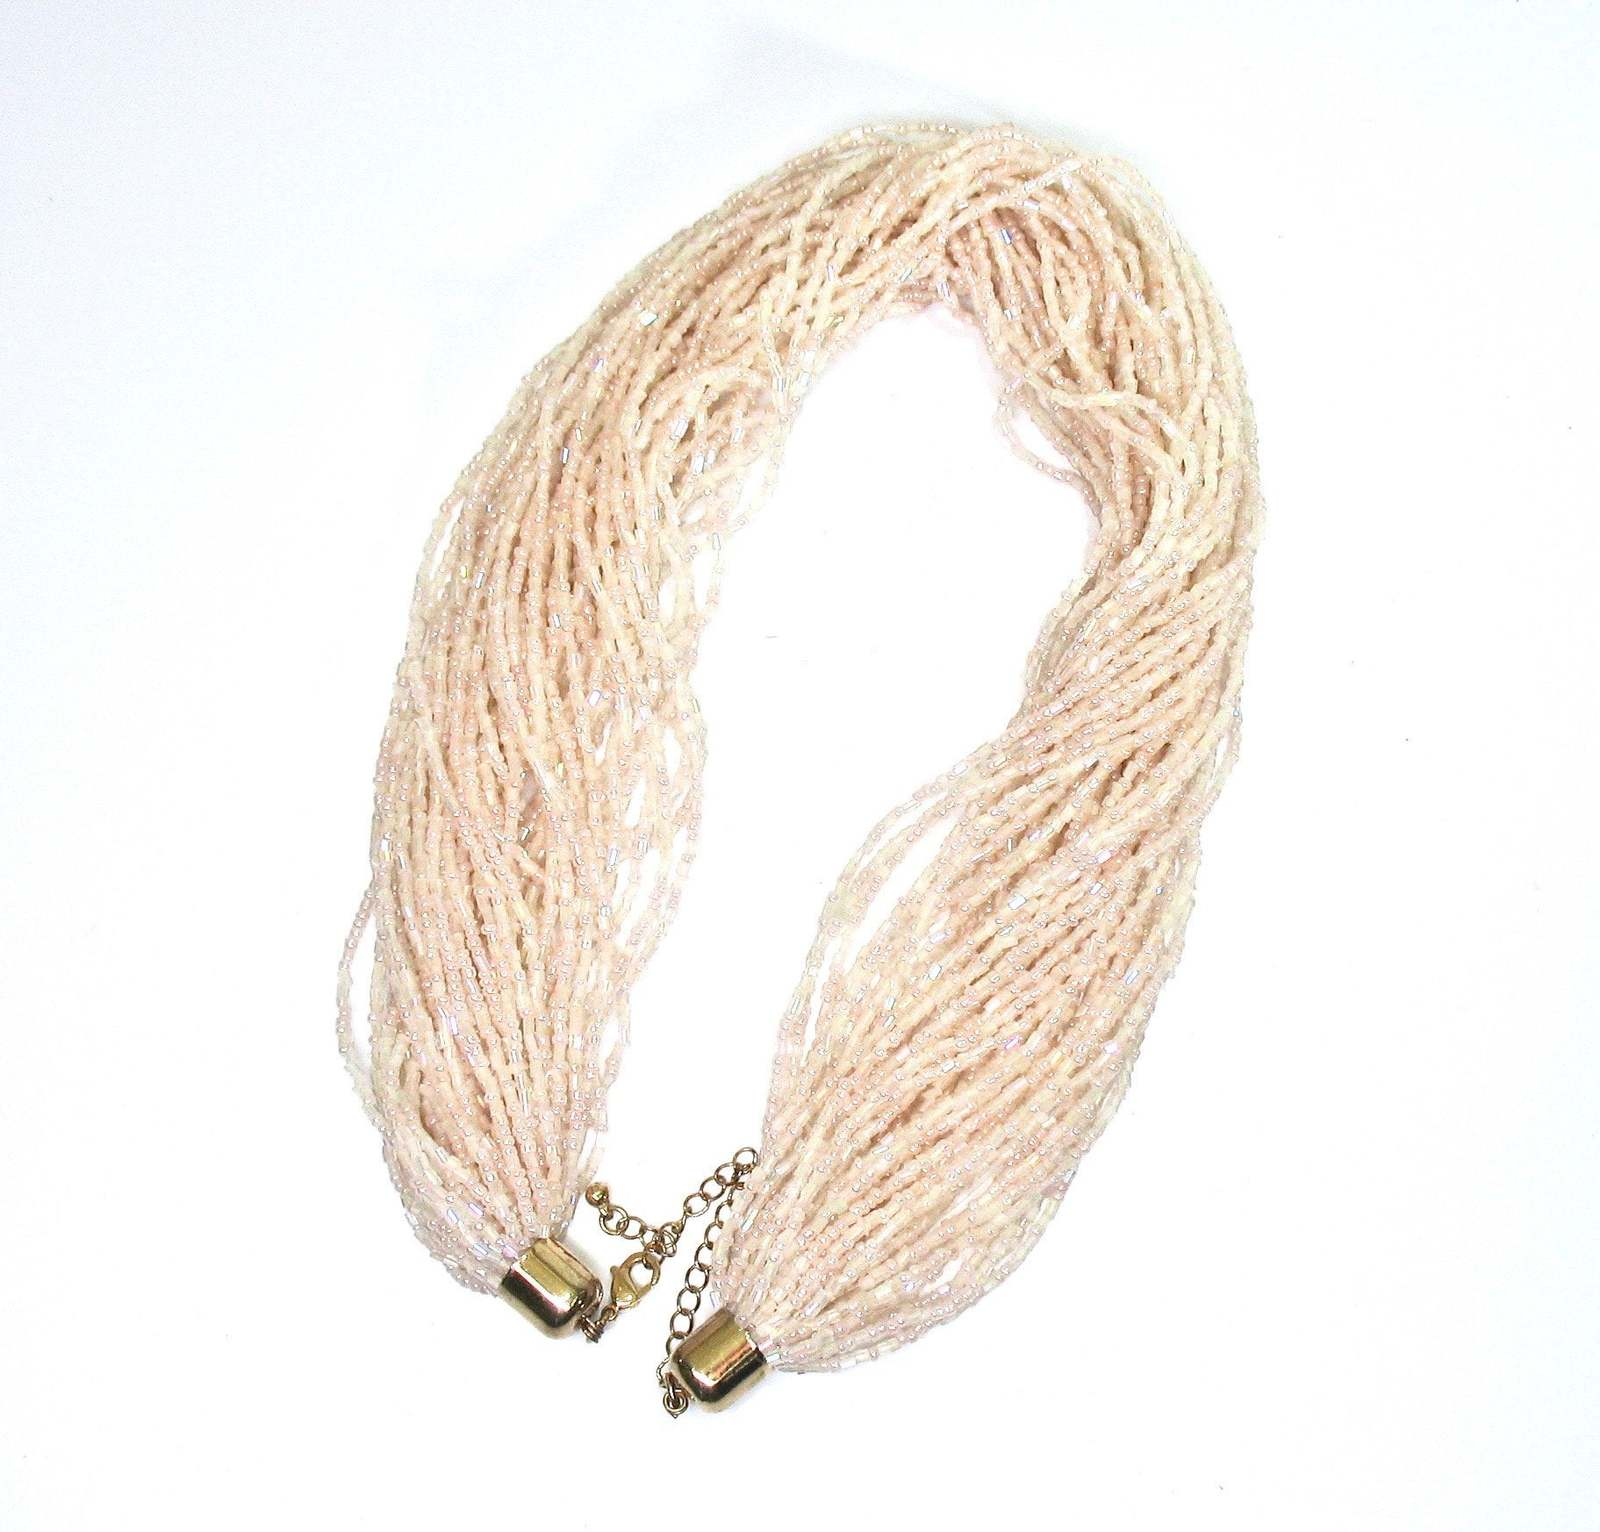 Crystal Seed Bead Necklace, Multiple Strands, AB Beads, Iridescent, Peach, Pink,